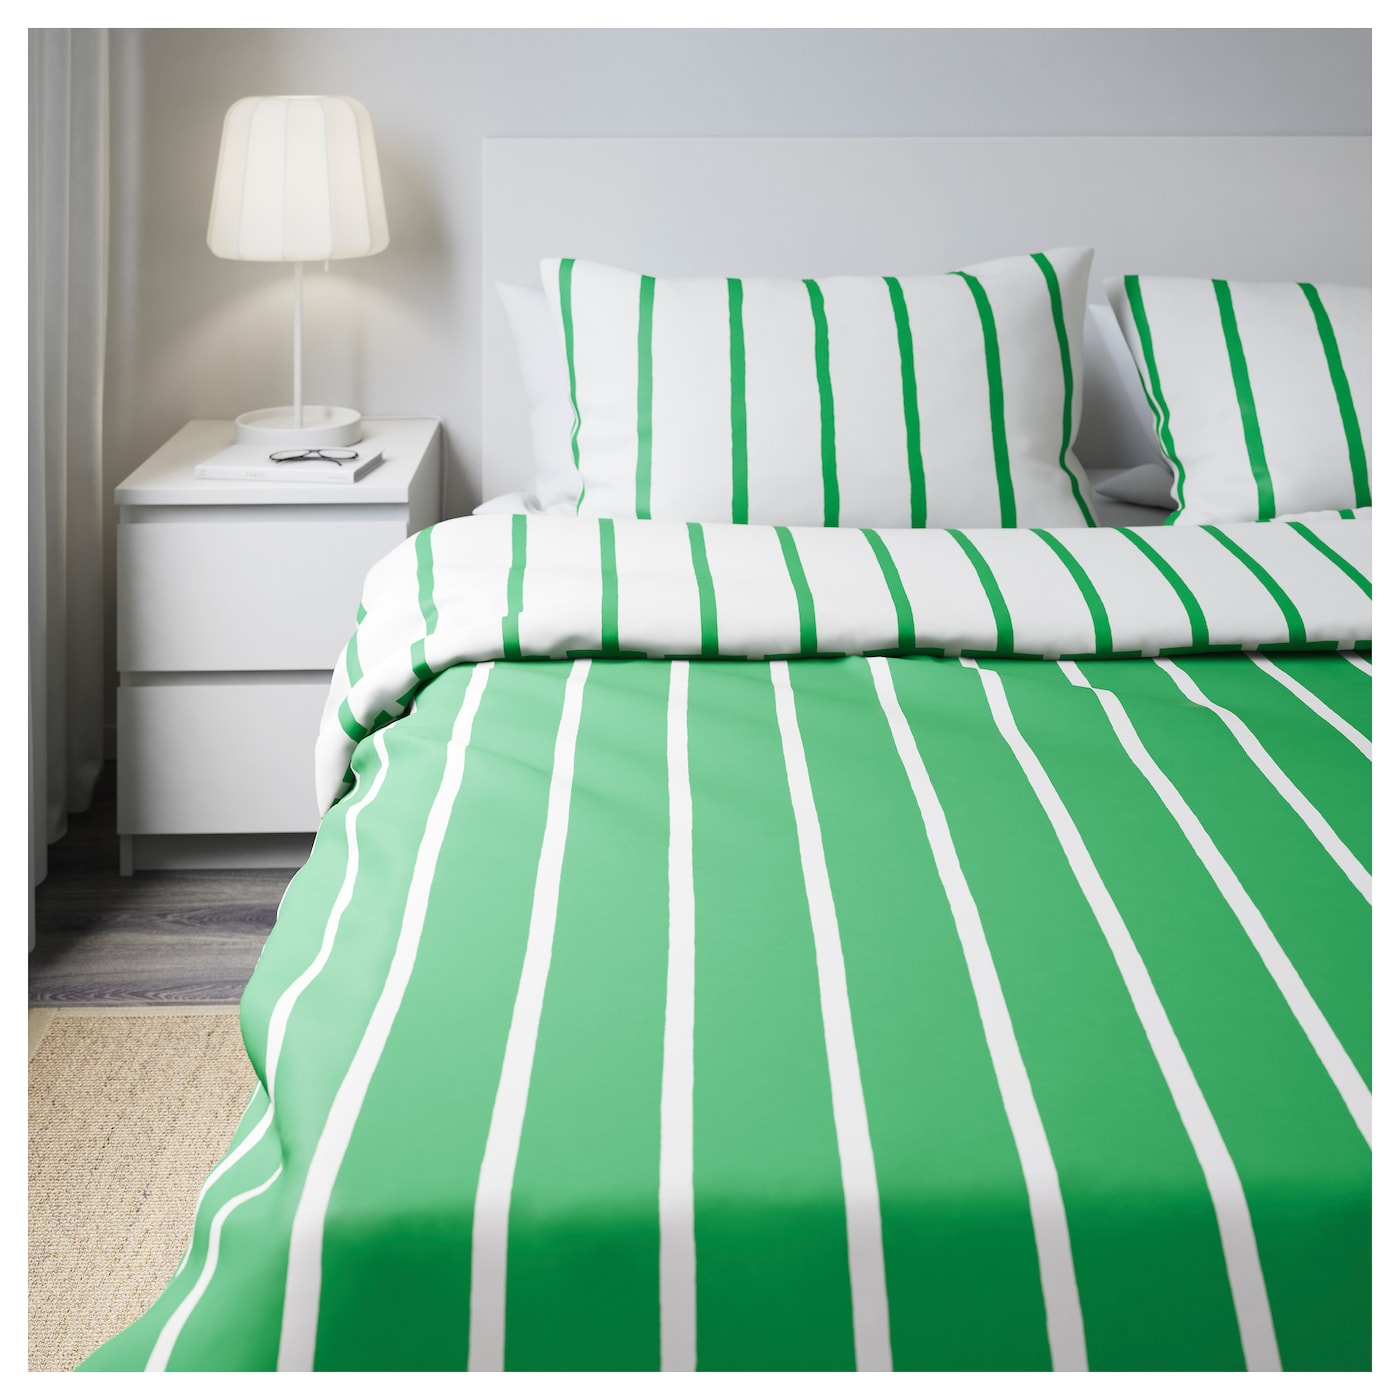 tuvbr cka quilt cover and 4 pillowcases green white 200x200 50x80 cm ikea. Black Bedroom Furniture Sets. Home Design Ideas